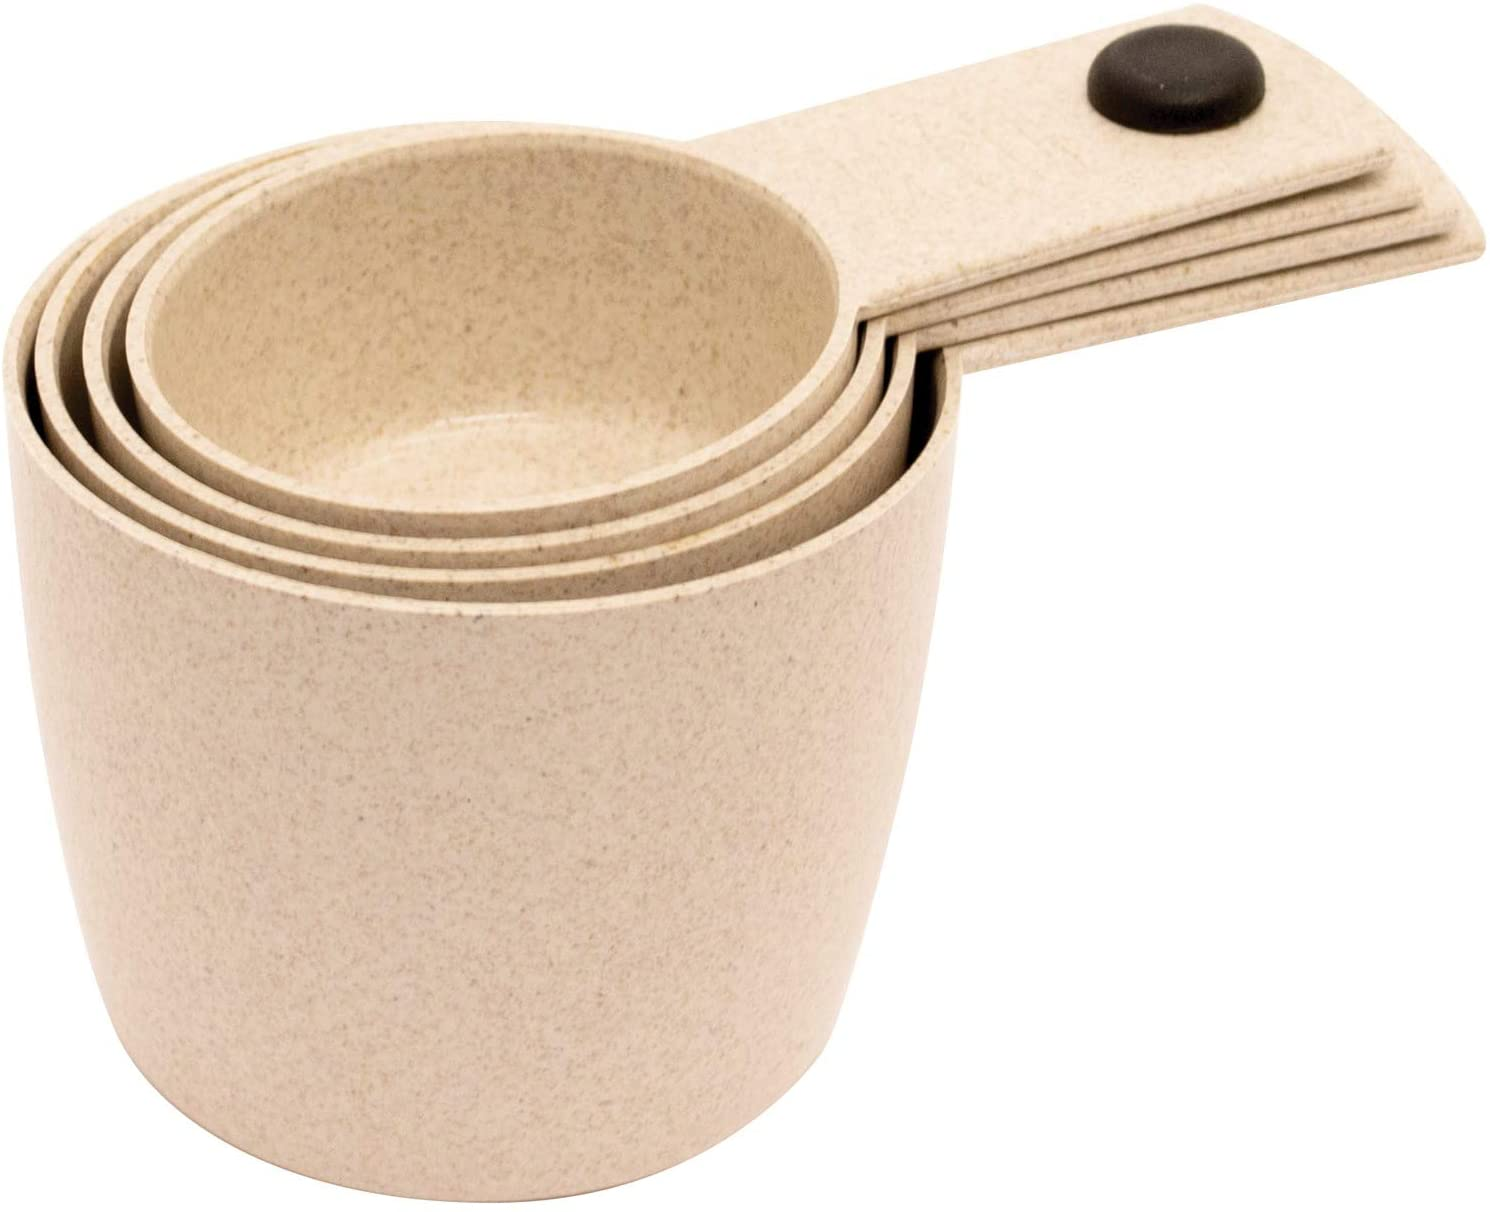 Gourmet By Starfrit T080284 ECO Measuring Cup Set, One Size, White